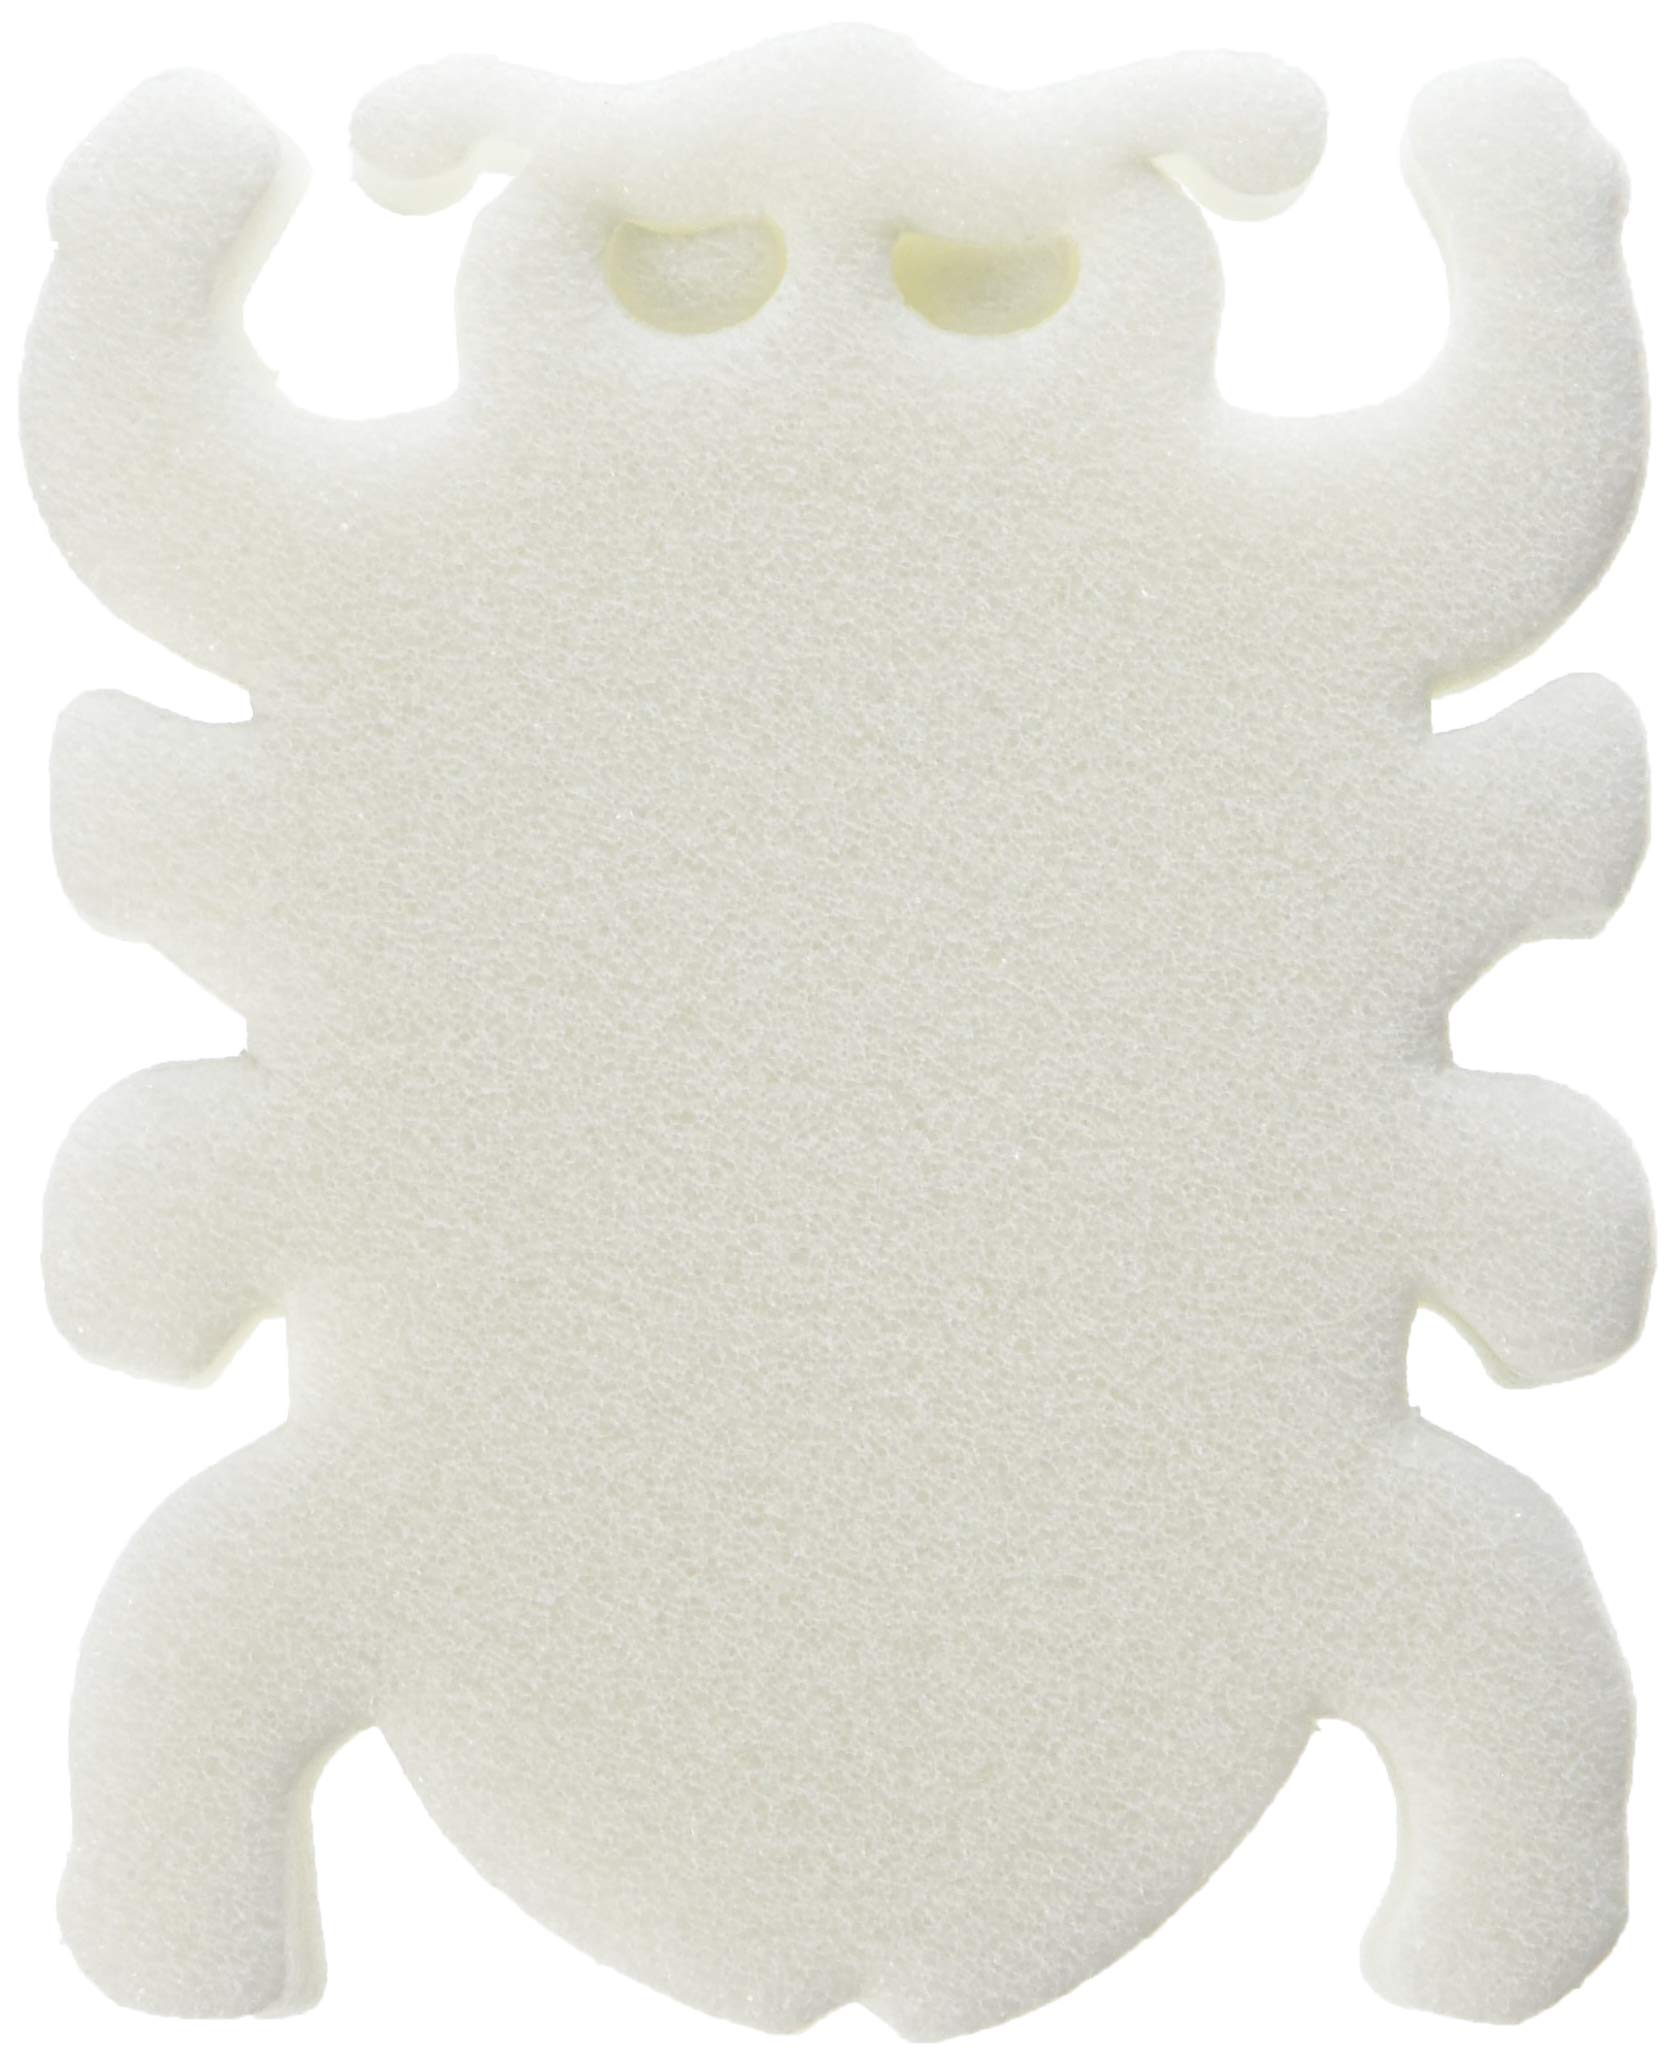 Rola-Chem Scumbug Oil-Absorbing Sponge - Pack of 2